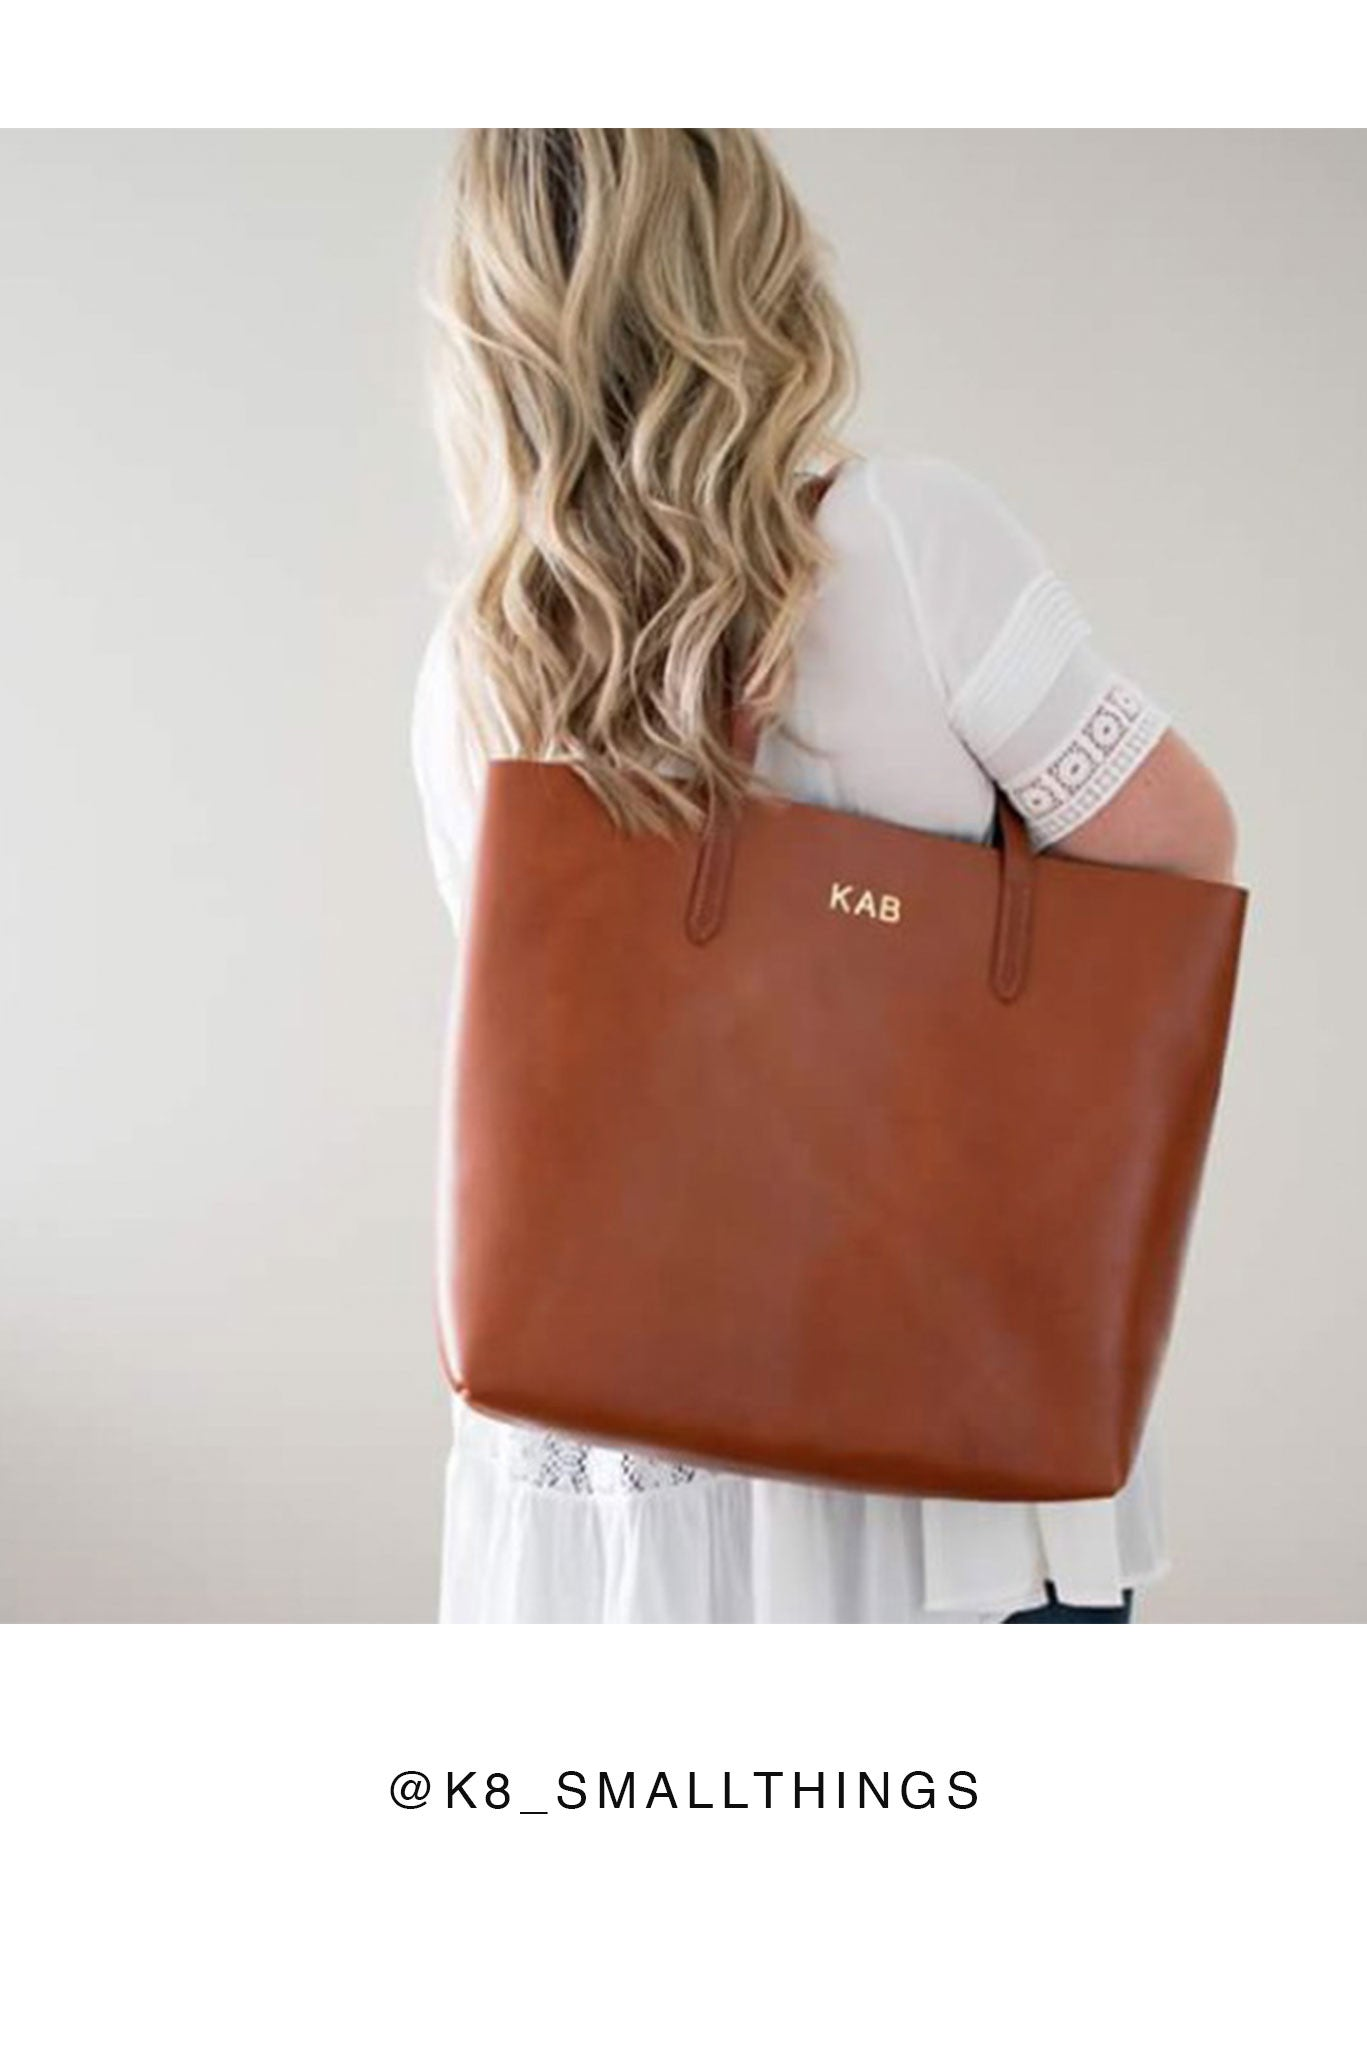 FOTO | The Highland Leather Tote - Chestnut - a genuine leather tote in chestnut brown vegetable tanned leather can be personalized with gold foil initials, making it the perfect personalized gift.